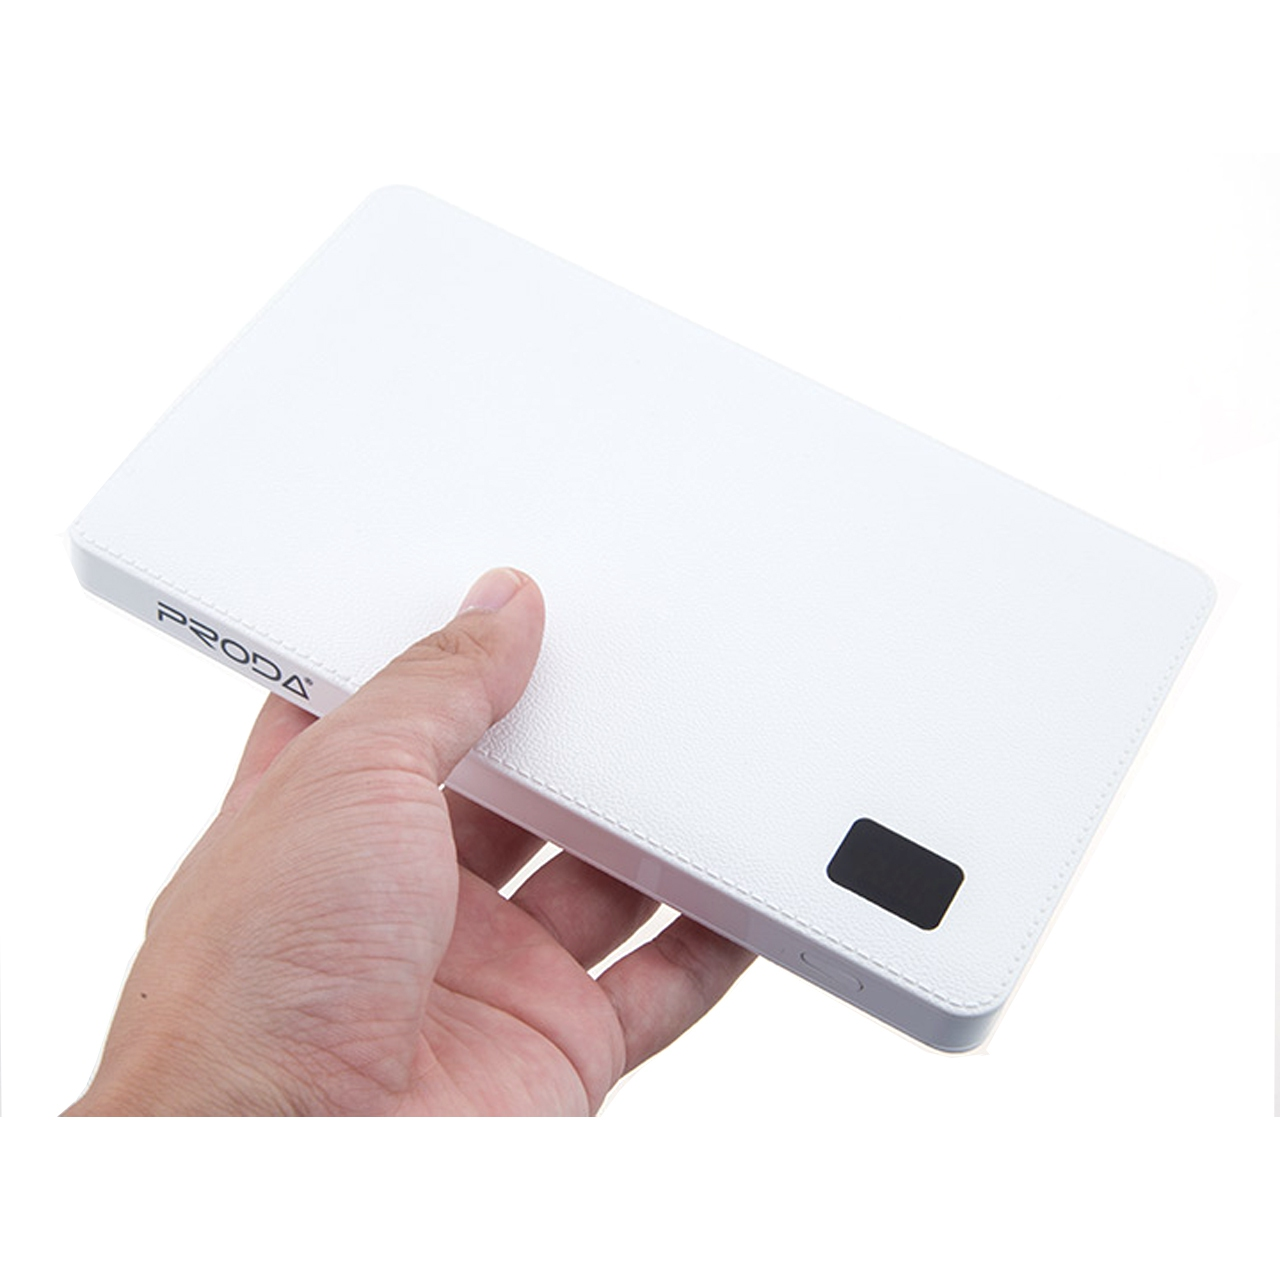 Power Bank Remax Proda แท้ 30000 mAh NOTES สีขาว